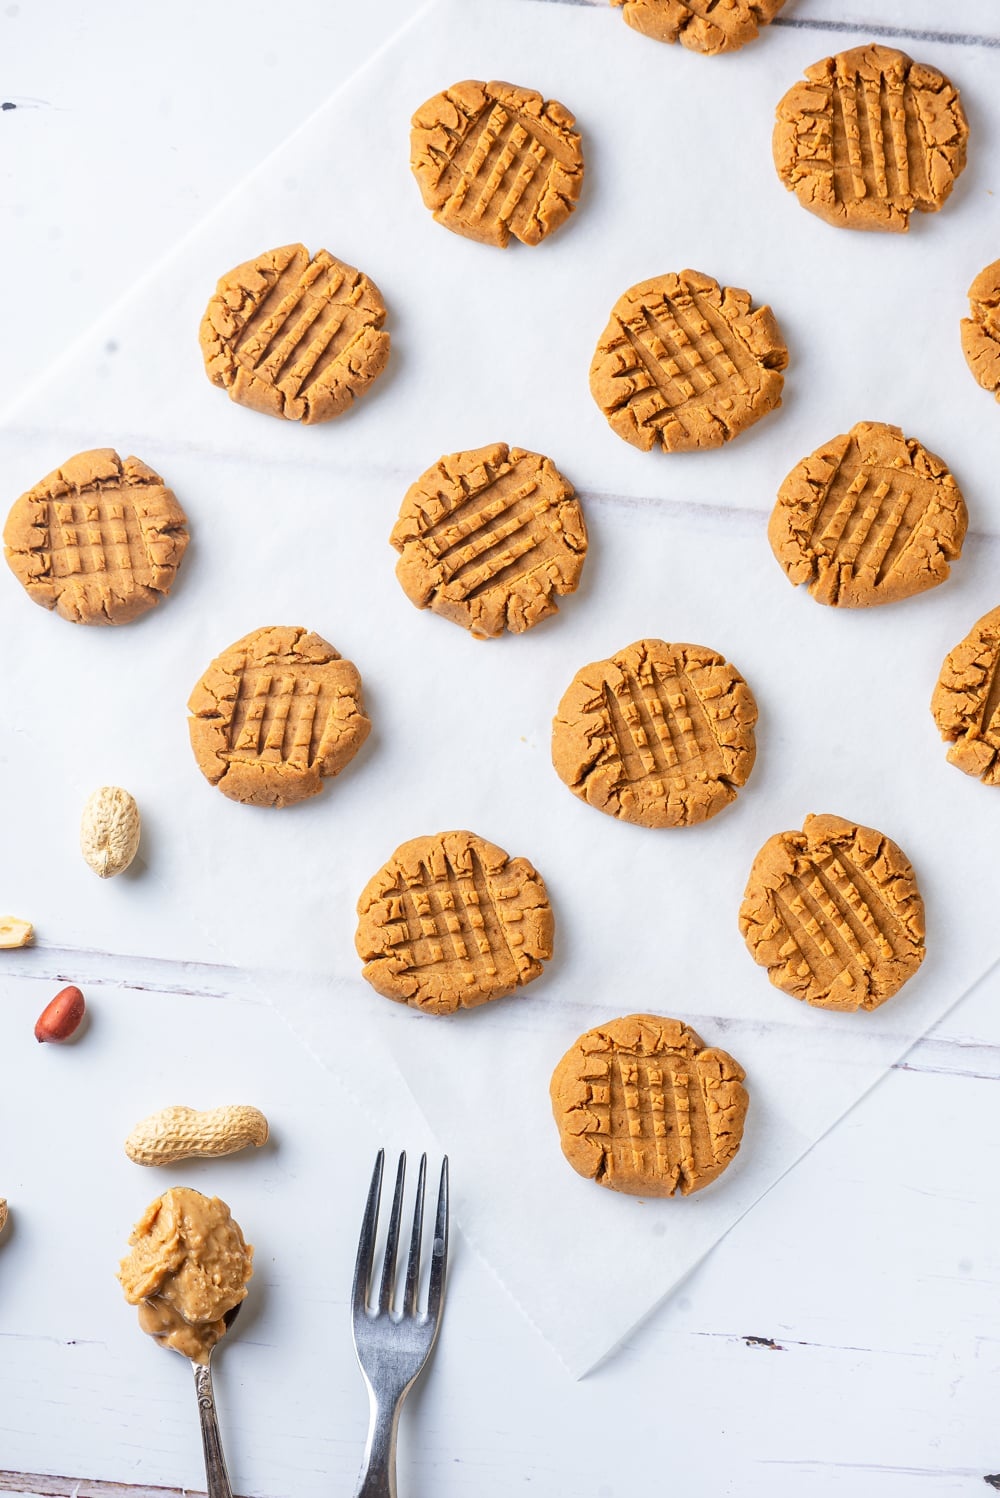 An overhead diagonal view of four rows of four vegan peanut butter cookies lined up with one another. There is a spoonful of peanut butter and a fork at the bottom left of the cookies.